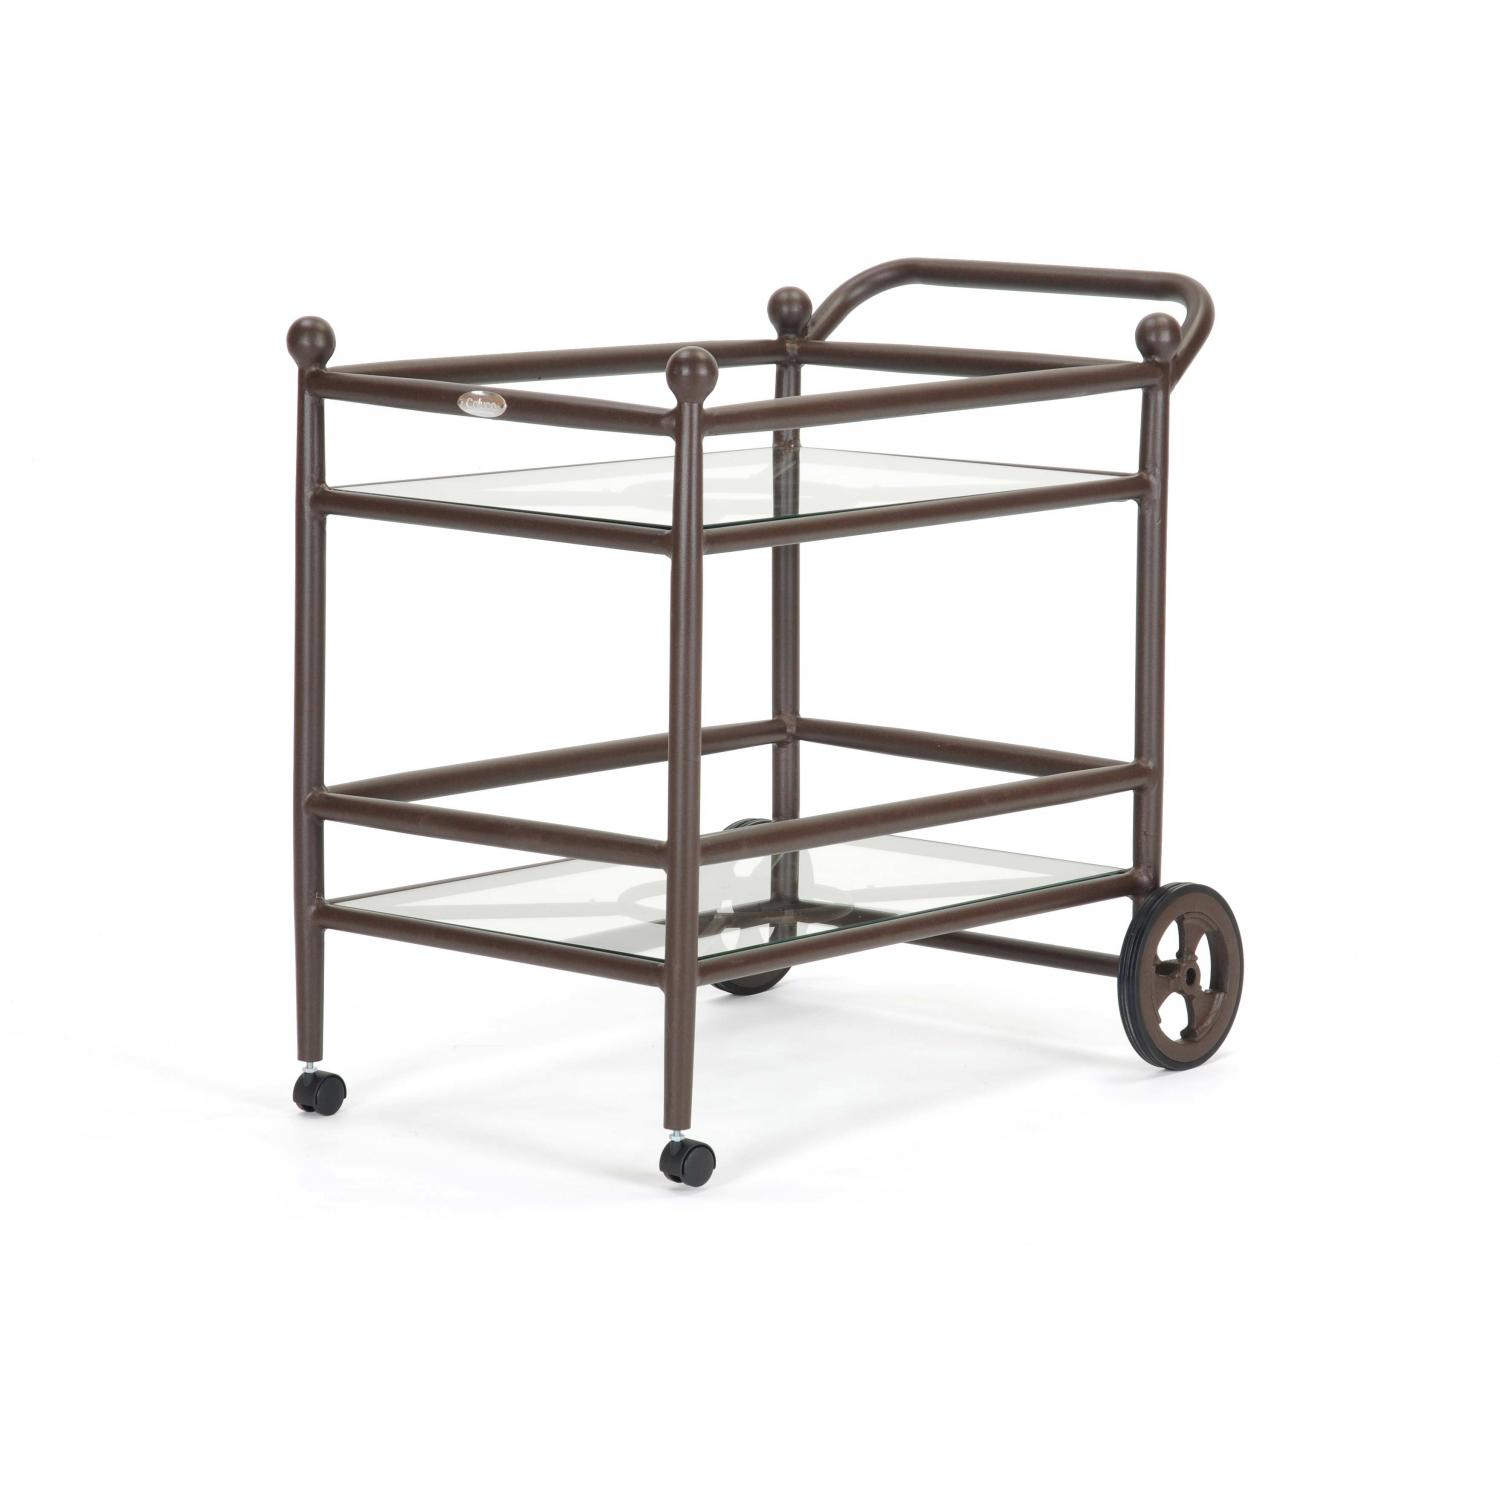 Caluco Origin Aluminum Tea Cart